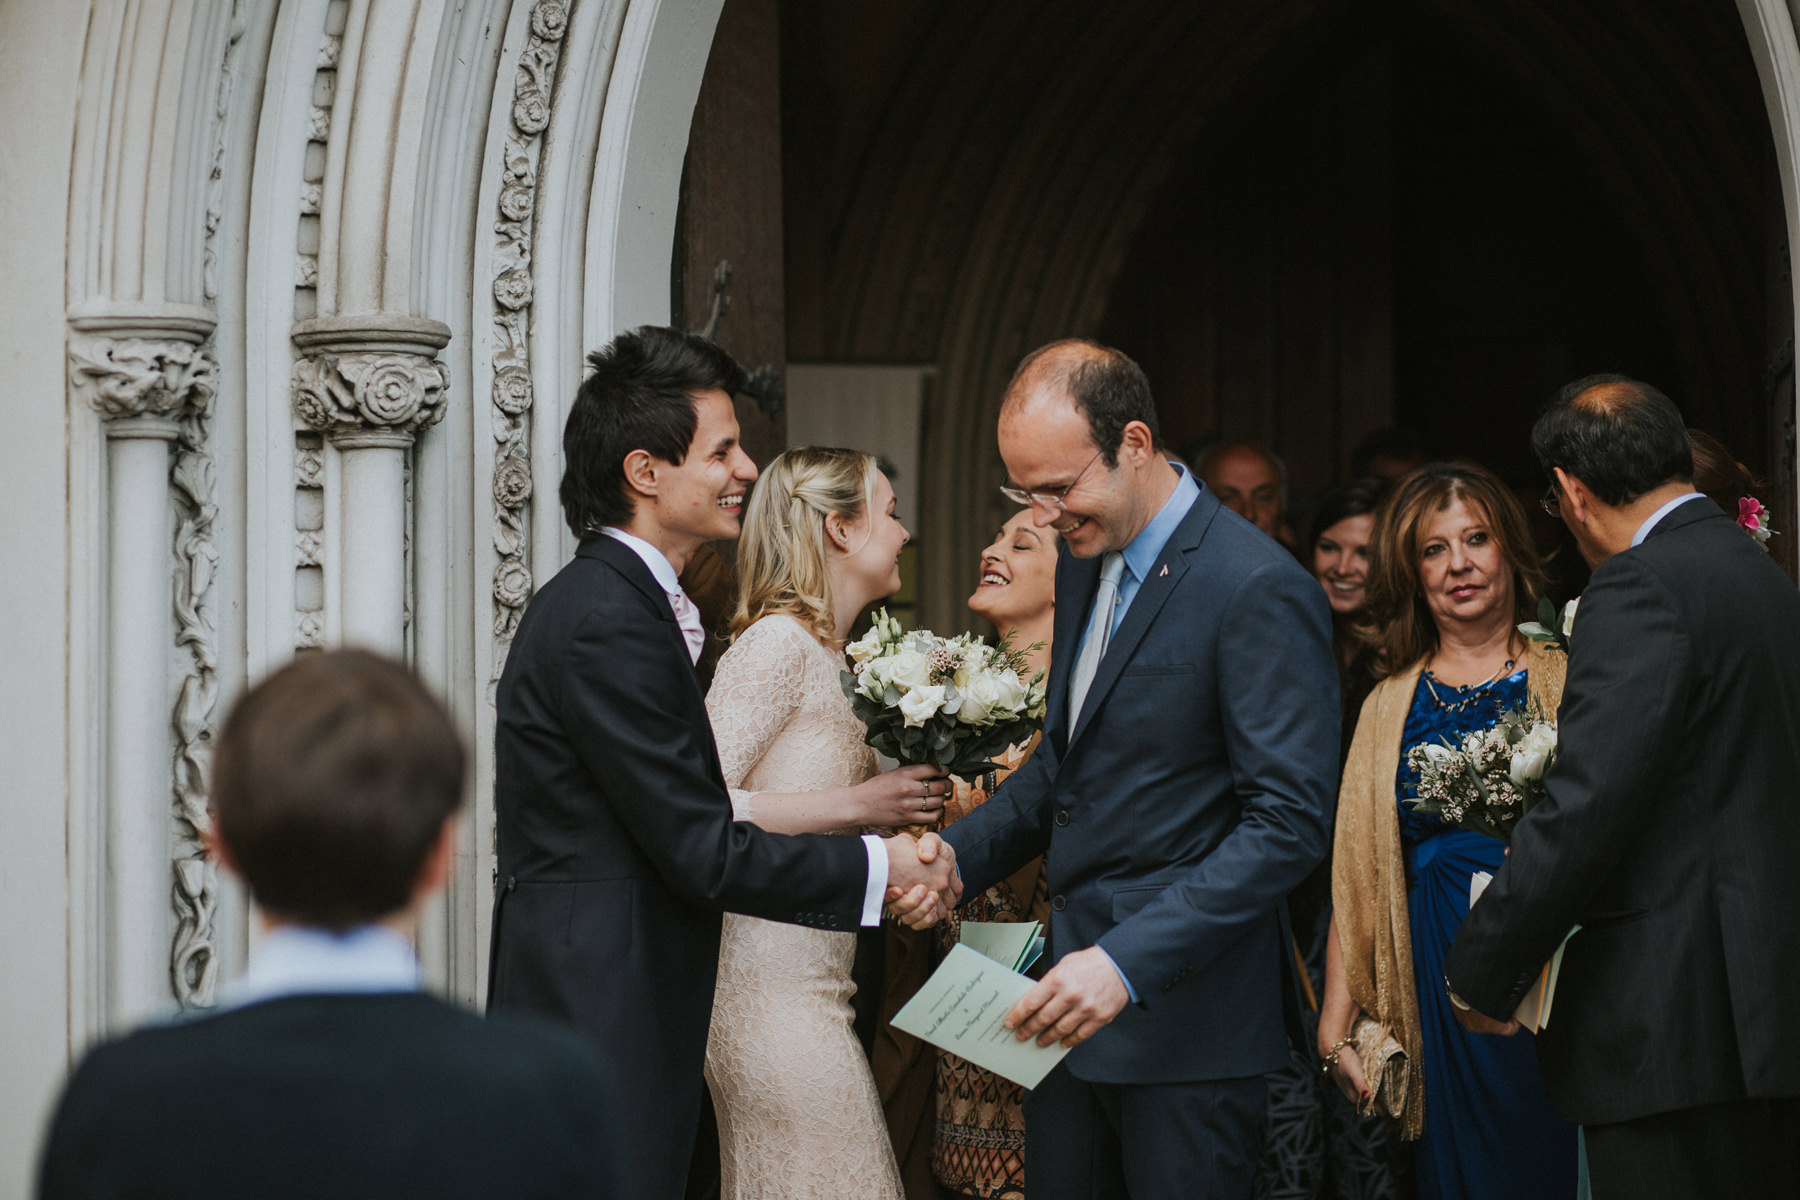 LD-306-groom--bride-greeting-guests-St-Marys-catholic-church-wedding-London.jpg